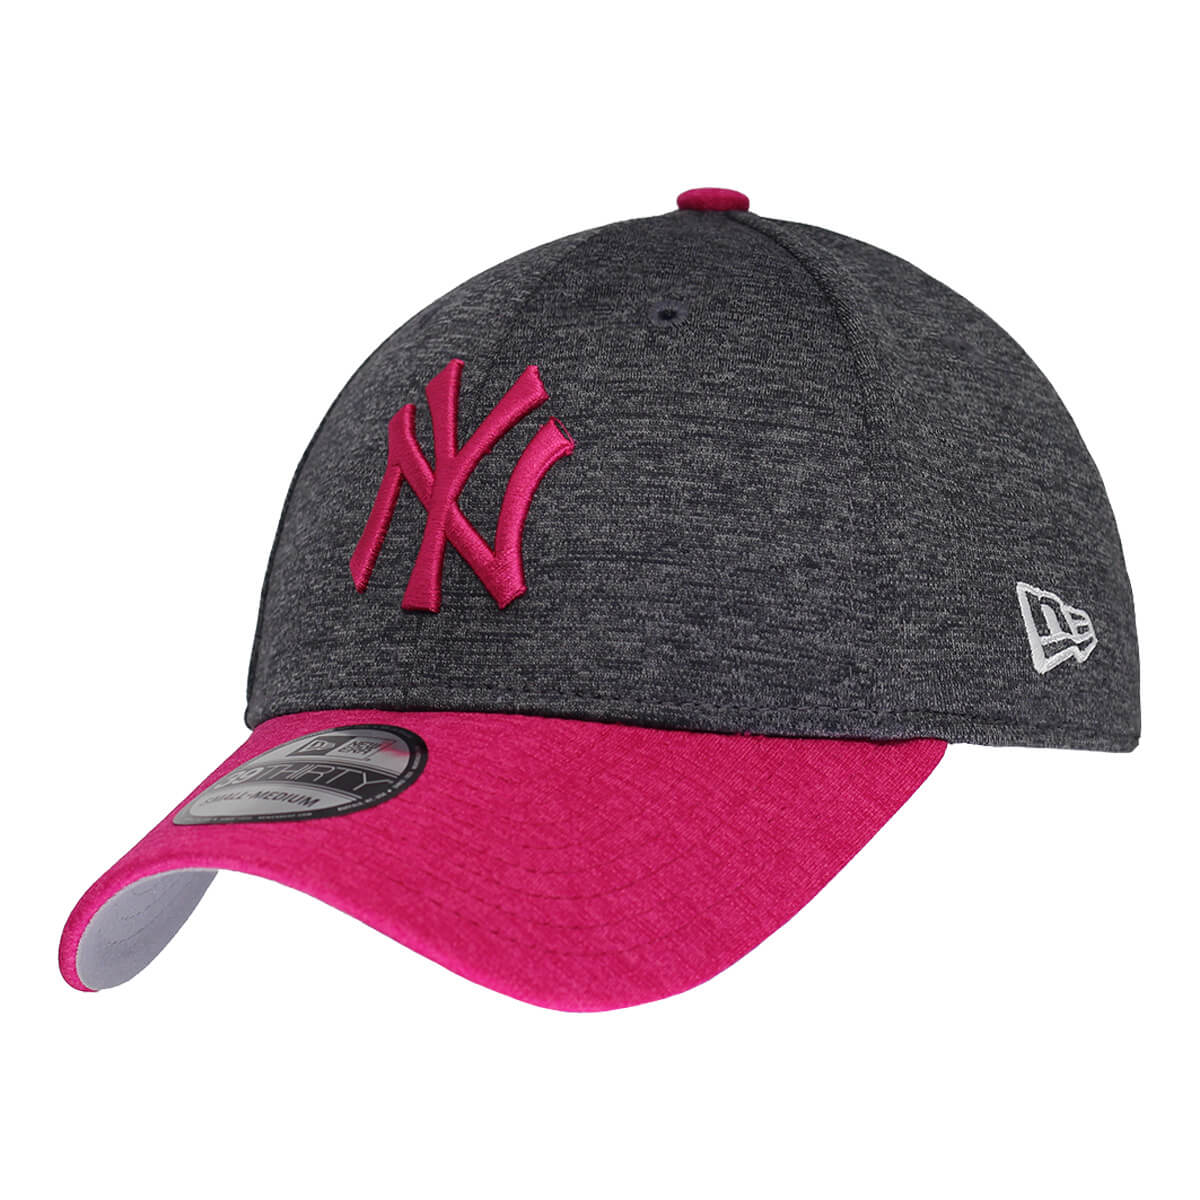 Boné New Era Aba Curva 3930 MLB NY Yankees Mothers Day